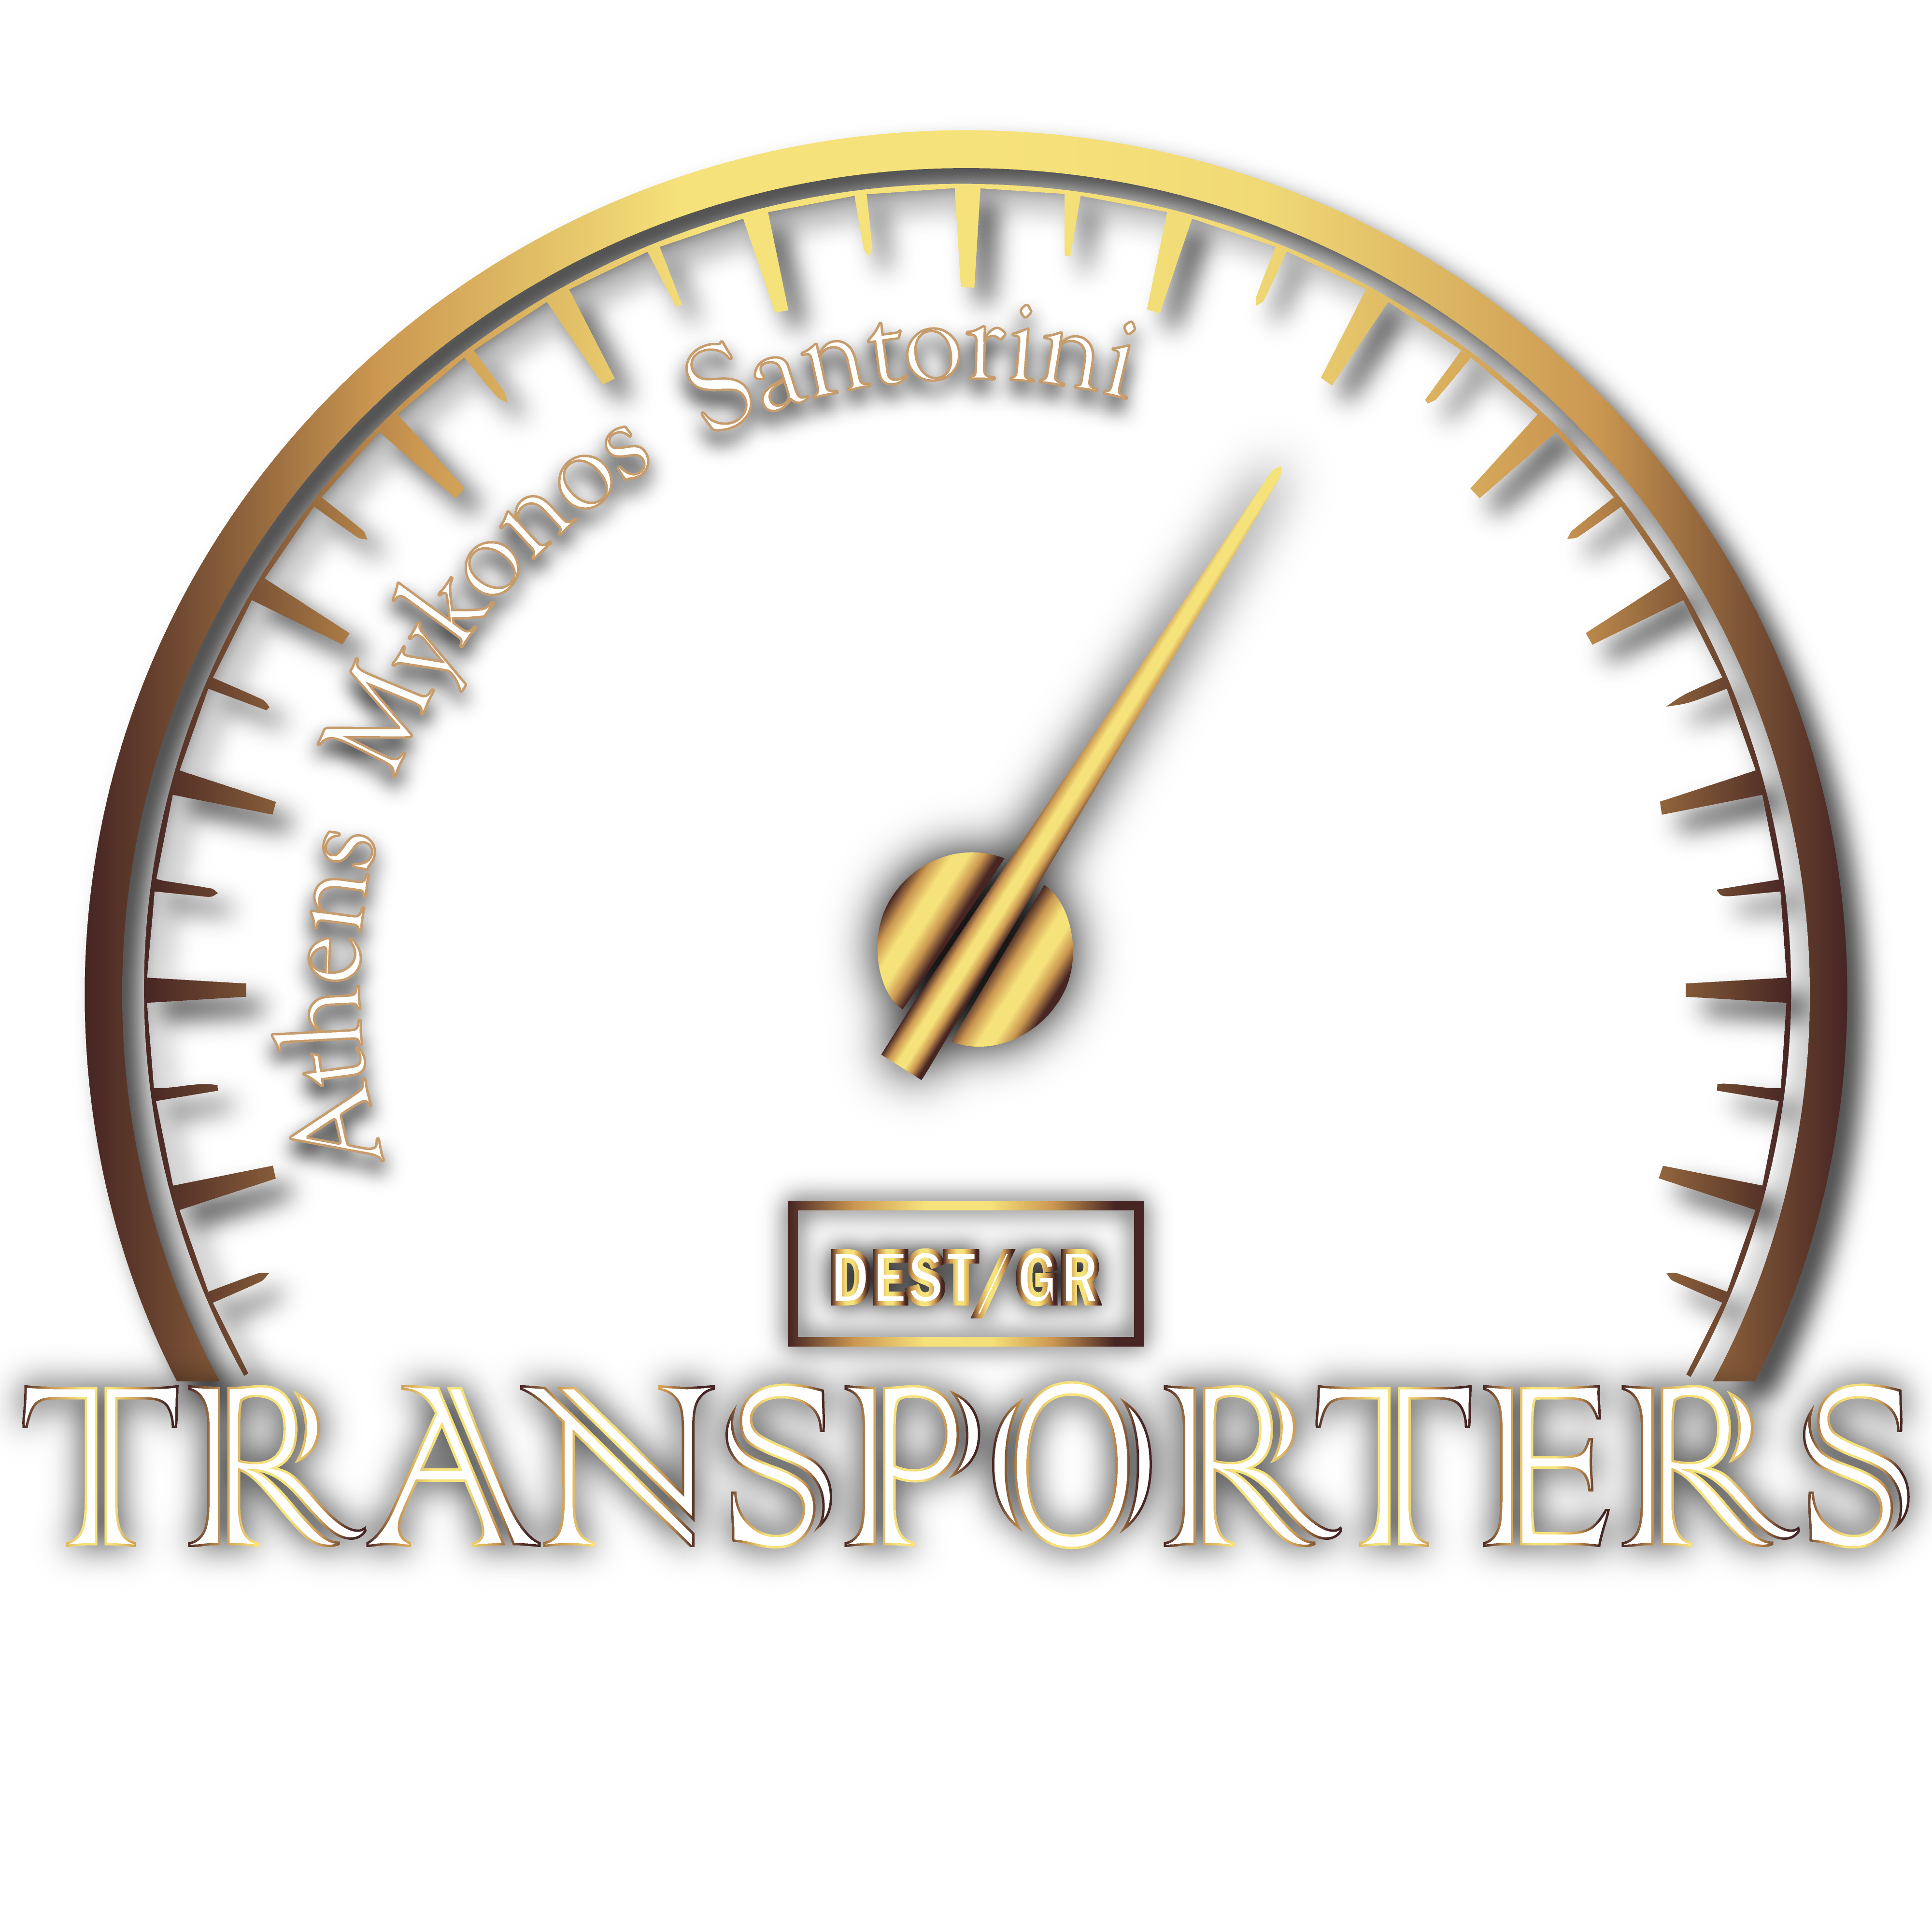 Transporters | Contact us - Transporters